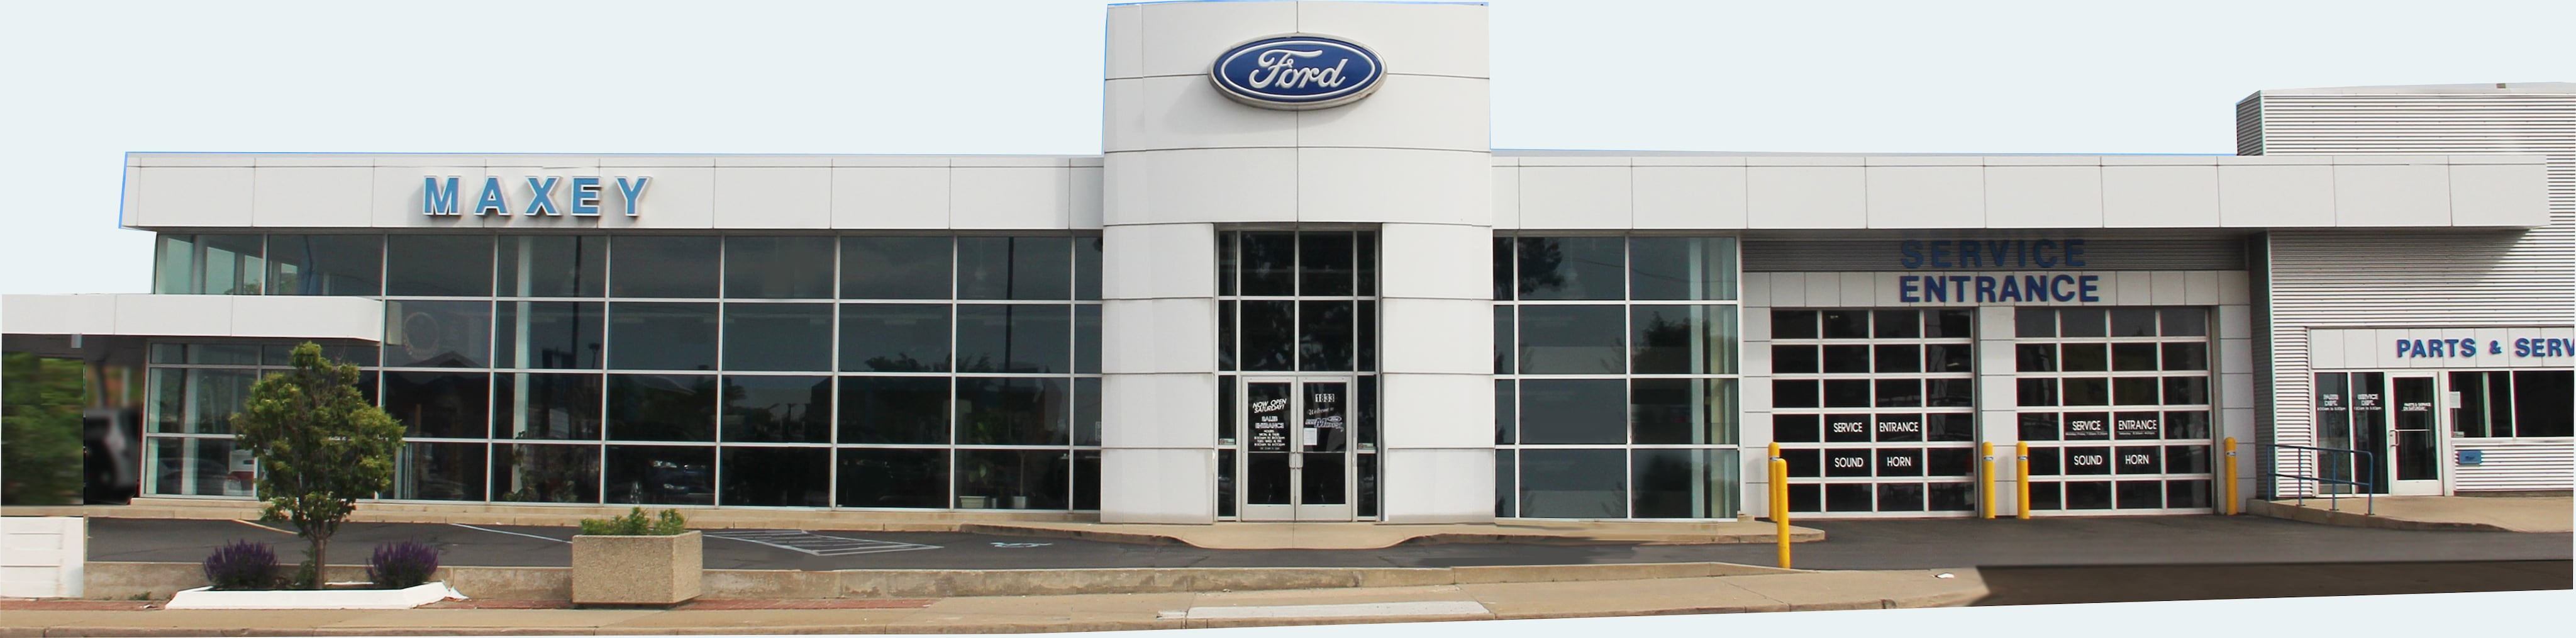 Ford Truck Incentives Ford Incentives Rebates Specials In Detroit Ford Finance And